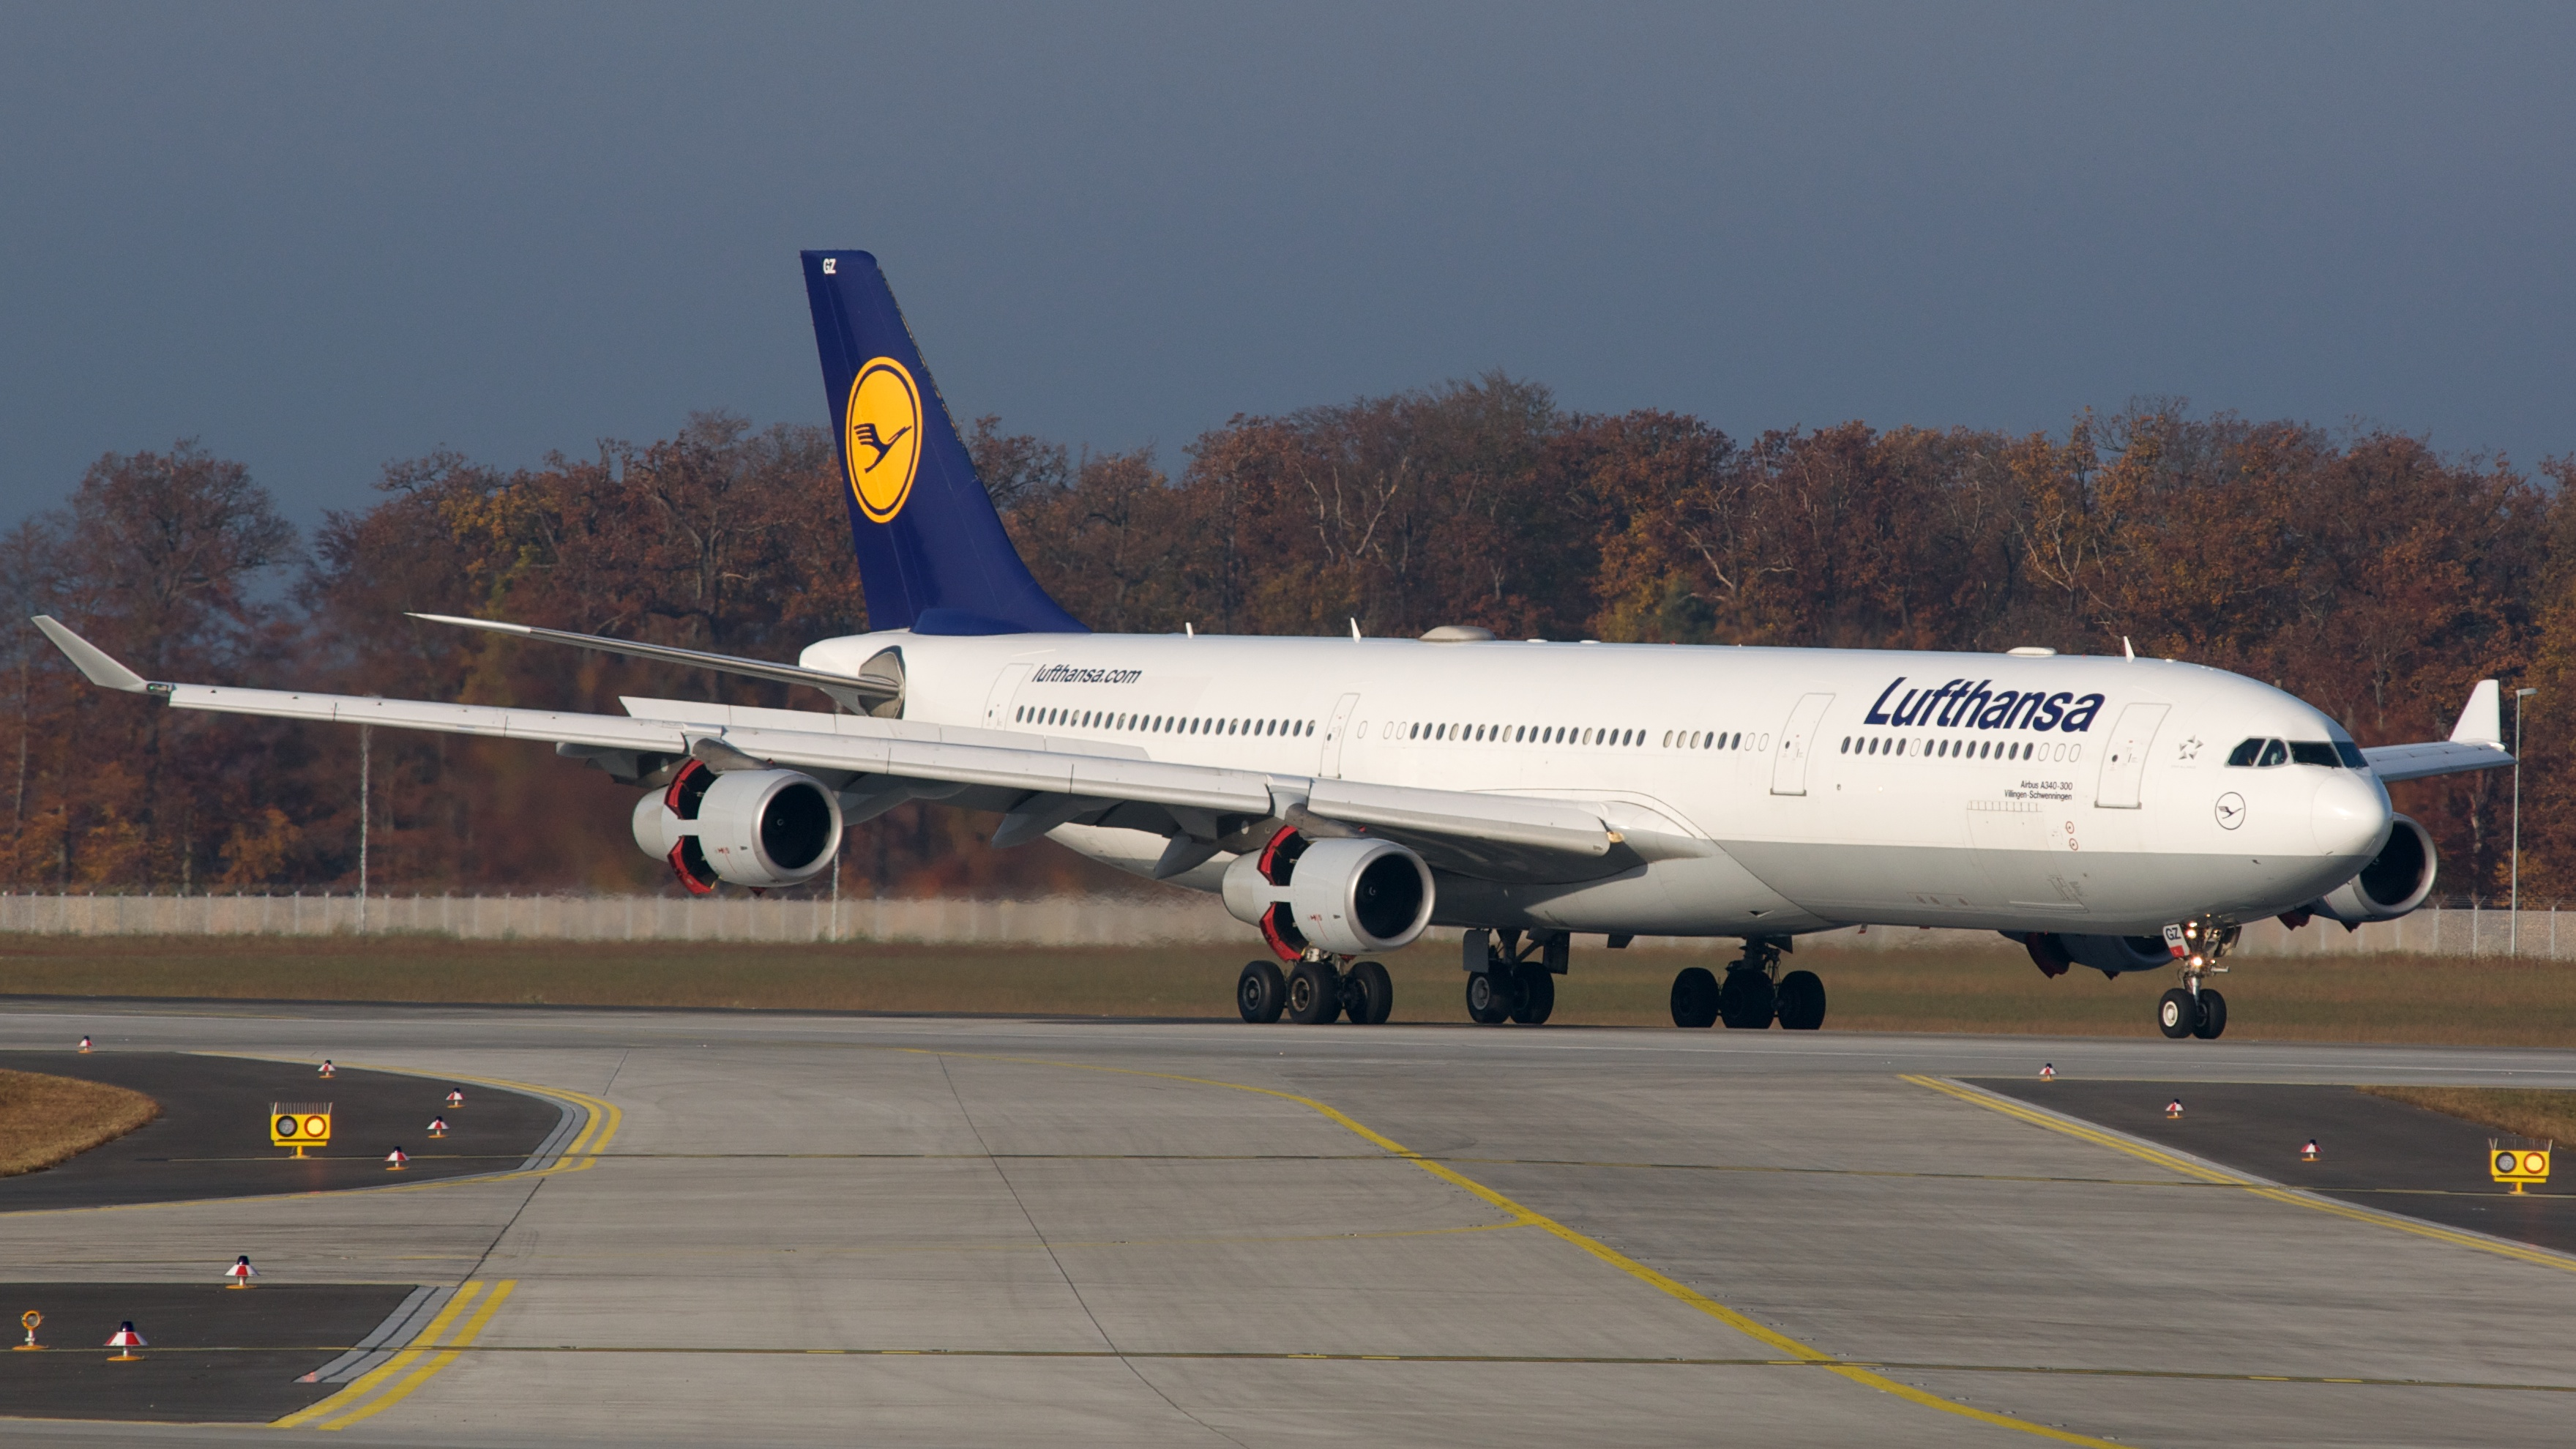 file lufthansa airbus a340 300 d aigz 7721067666 jpg wikimedia commons. Black Bedroom Furniture Sets. Home Design Ideas